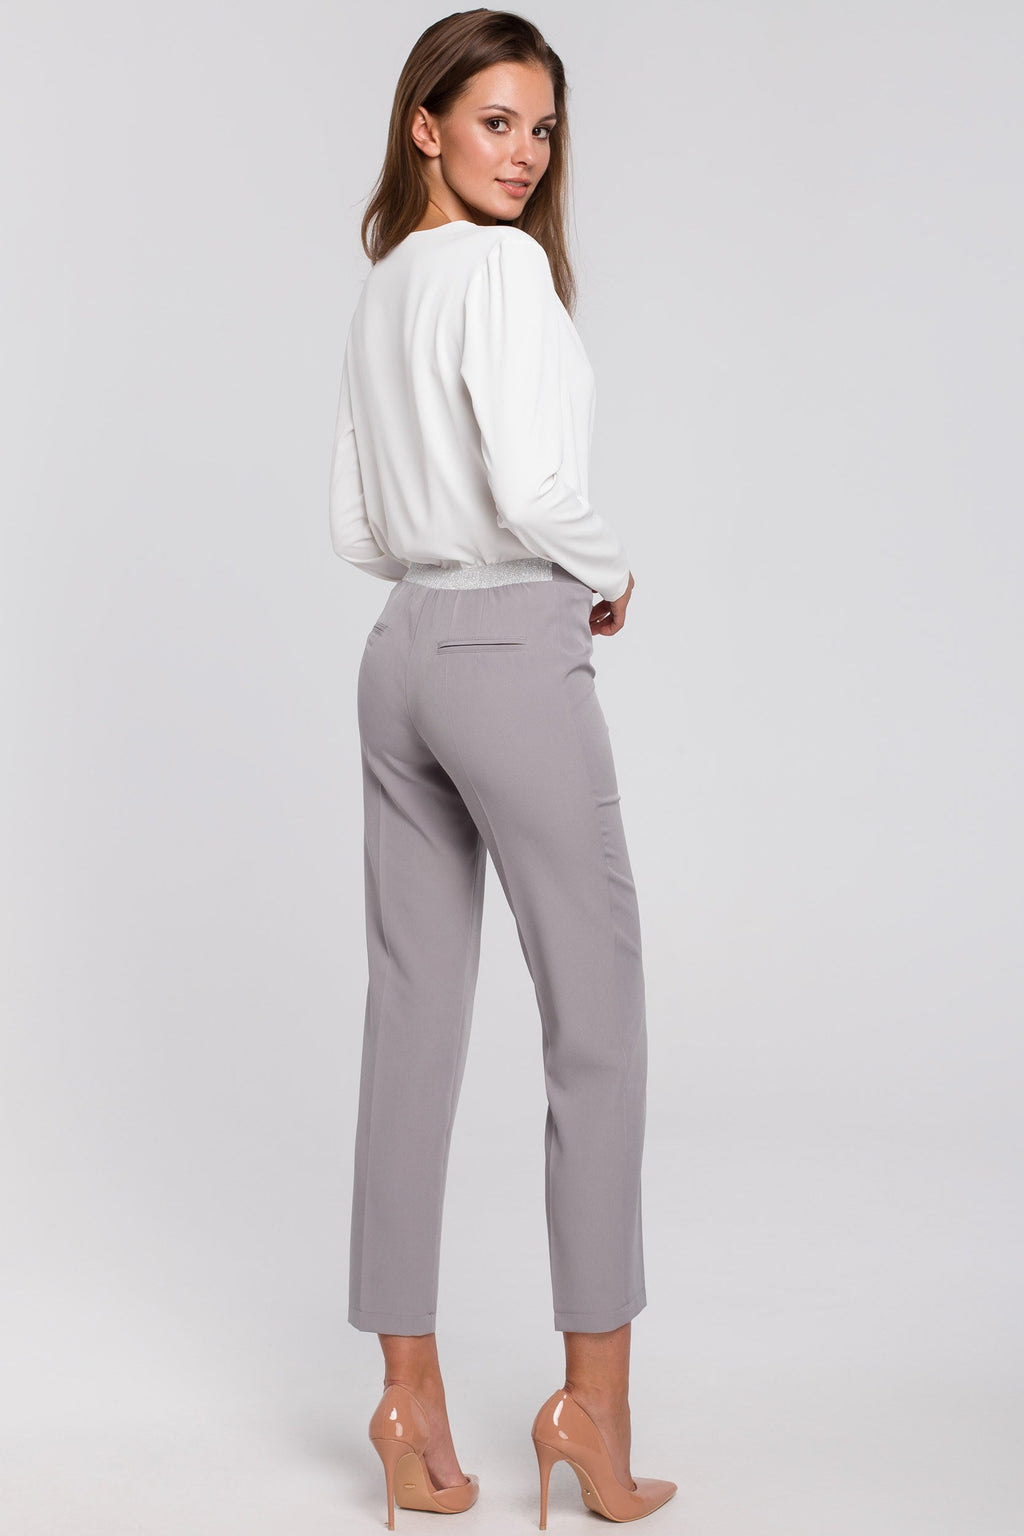 Grey Capri Trousers With Silver Elastic Waist Band - So Chic Boutique